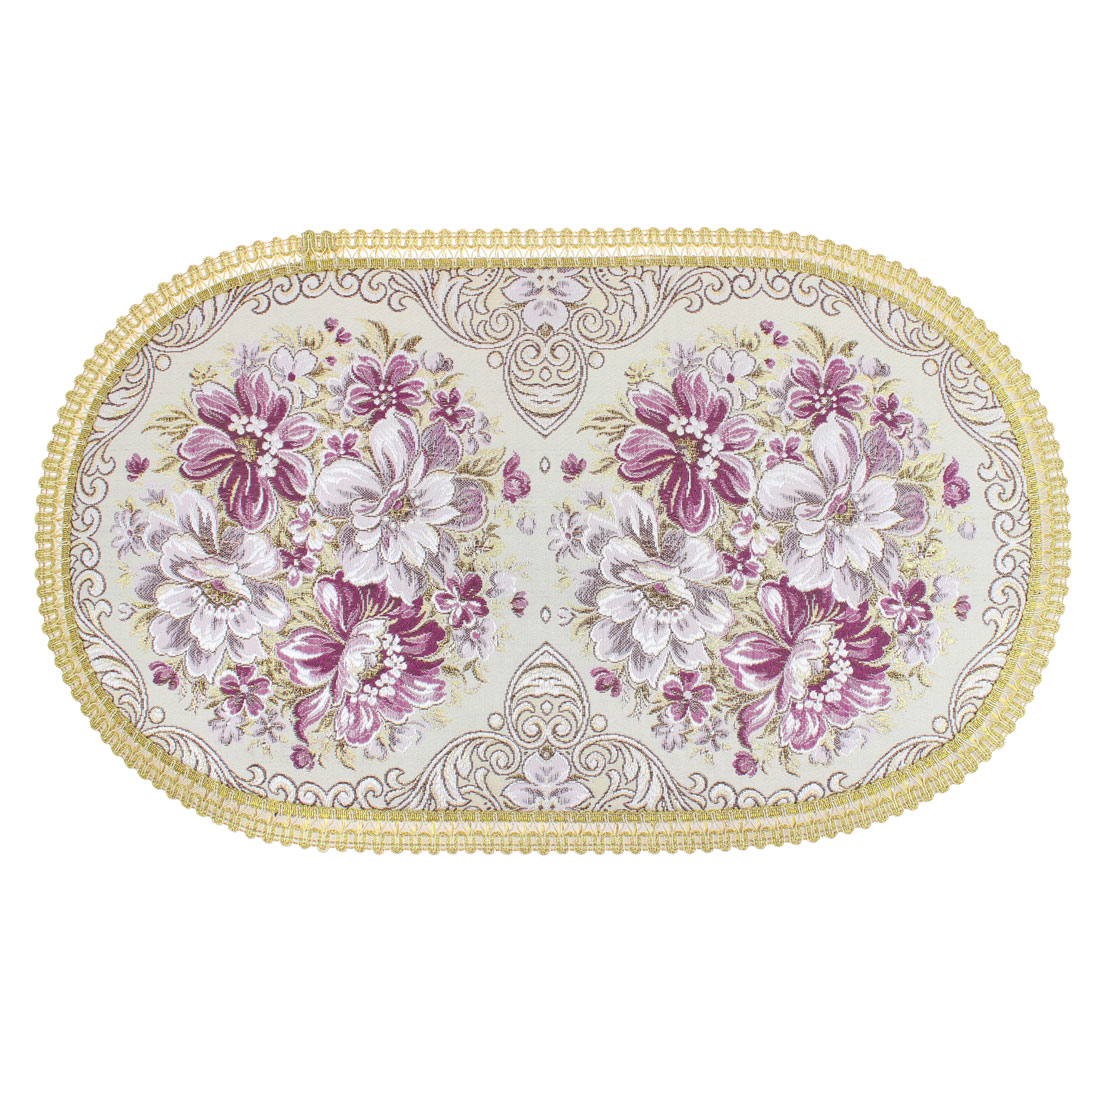 "Oval Shape Flowers Pattern Table Cup Mat Carpet 22"" Length"